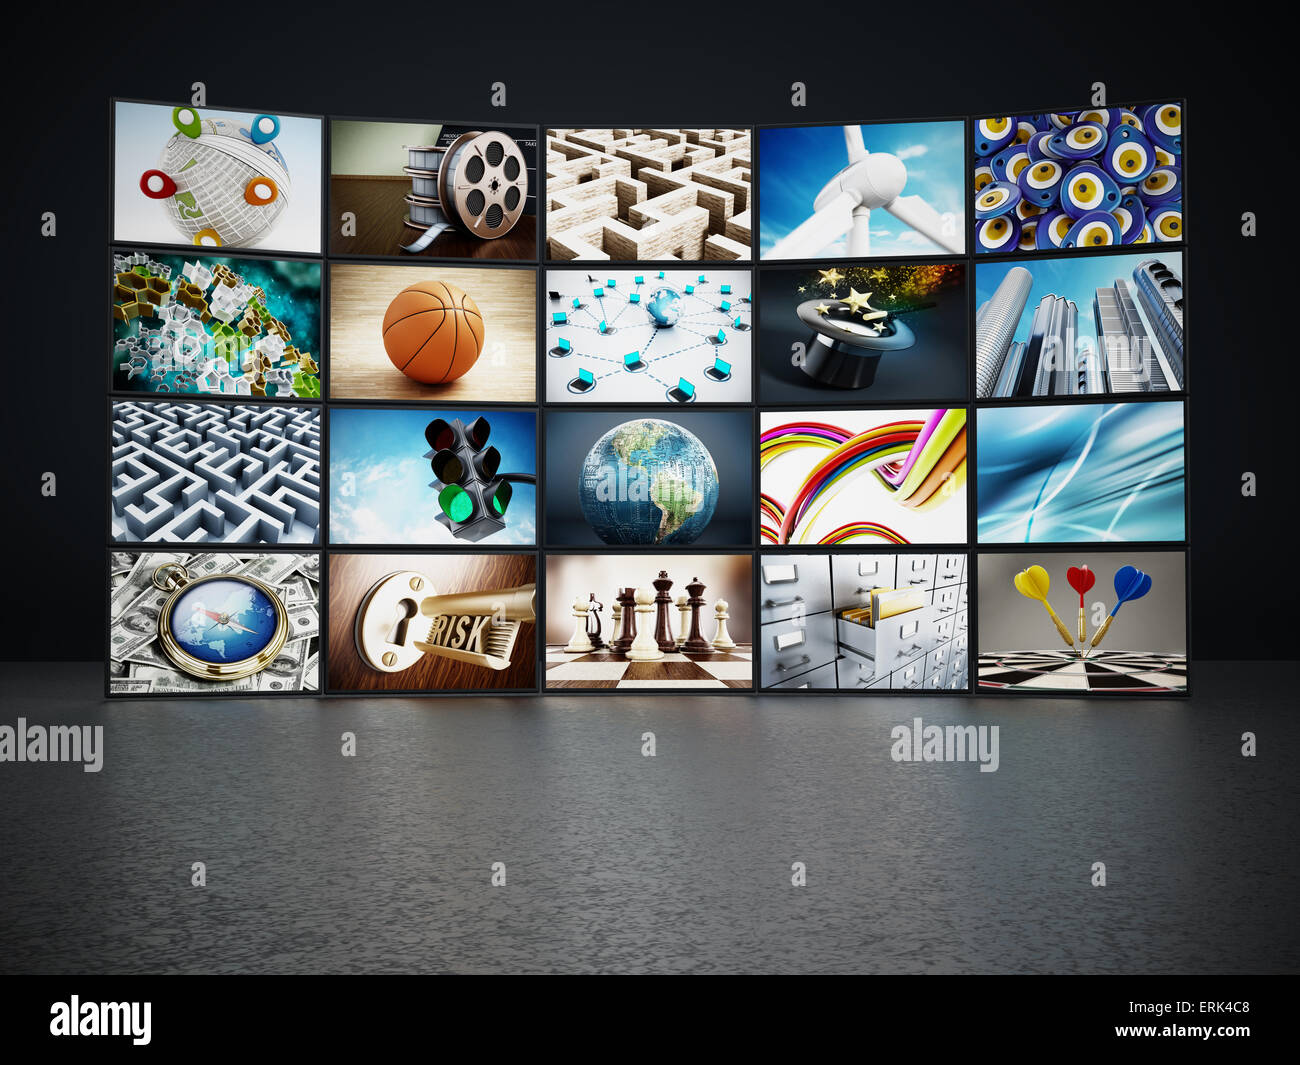 Video wall containing images from my portfolio. - Stock Image